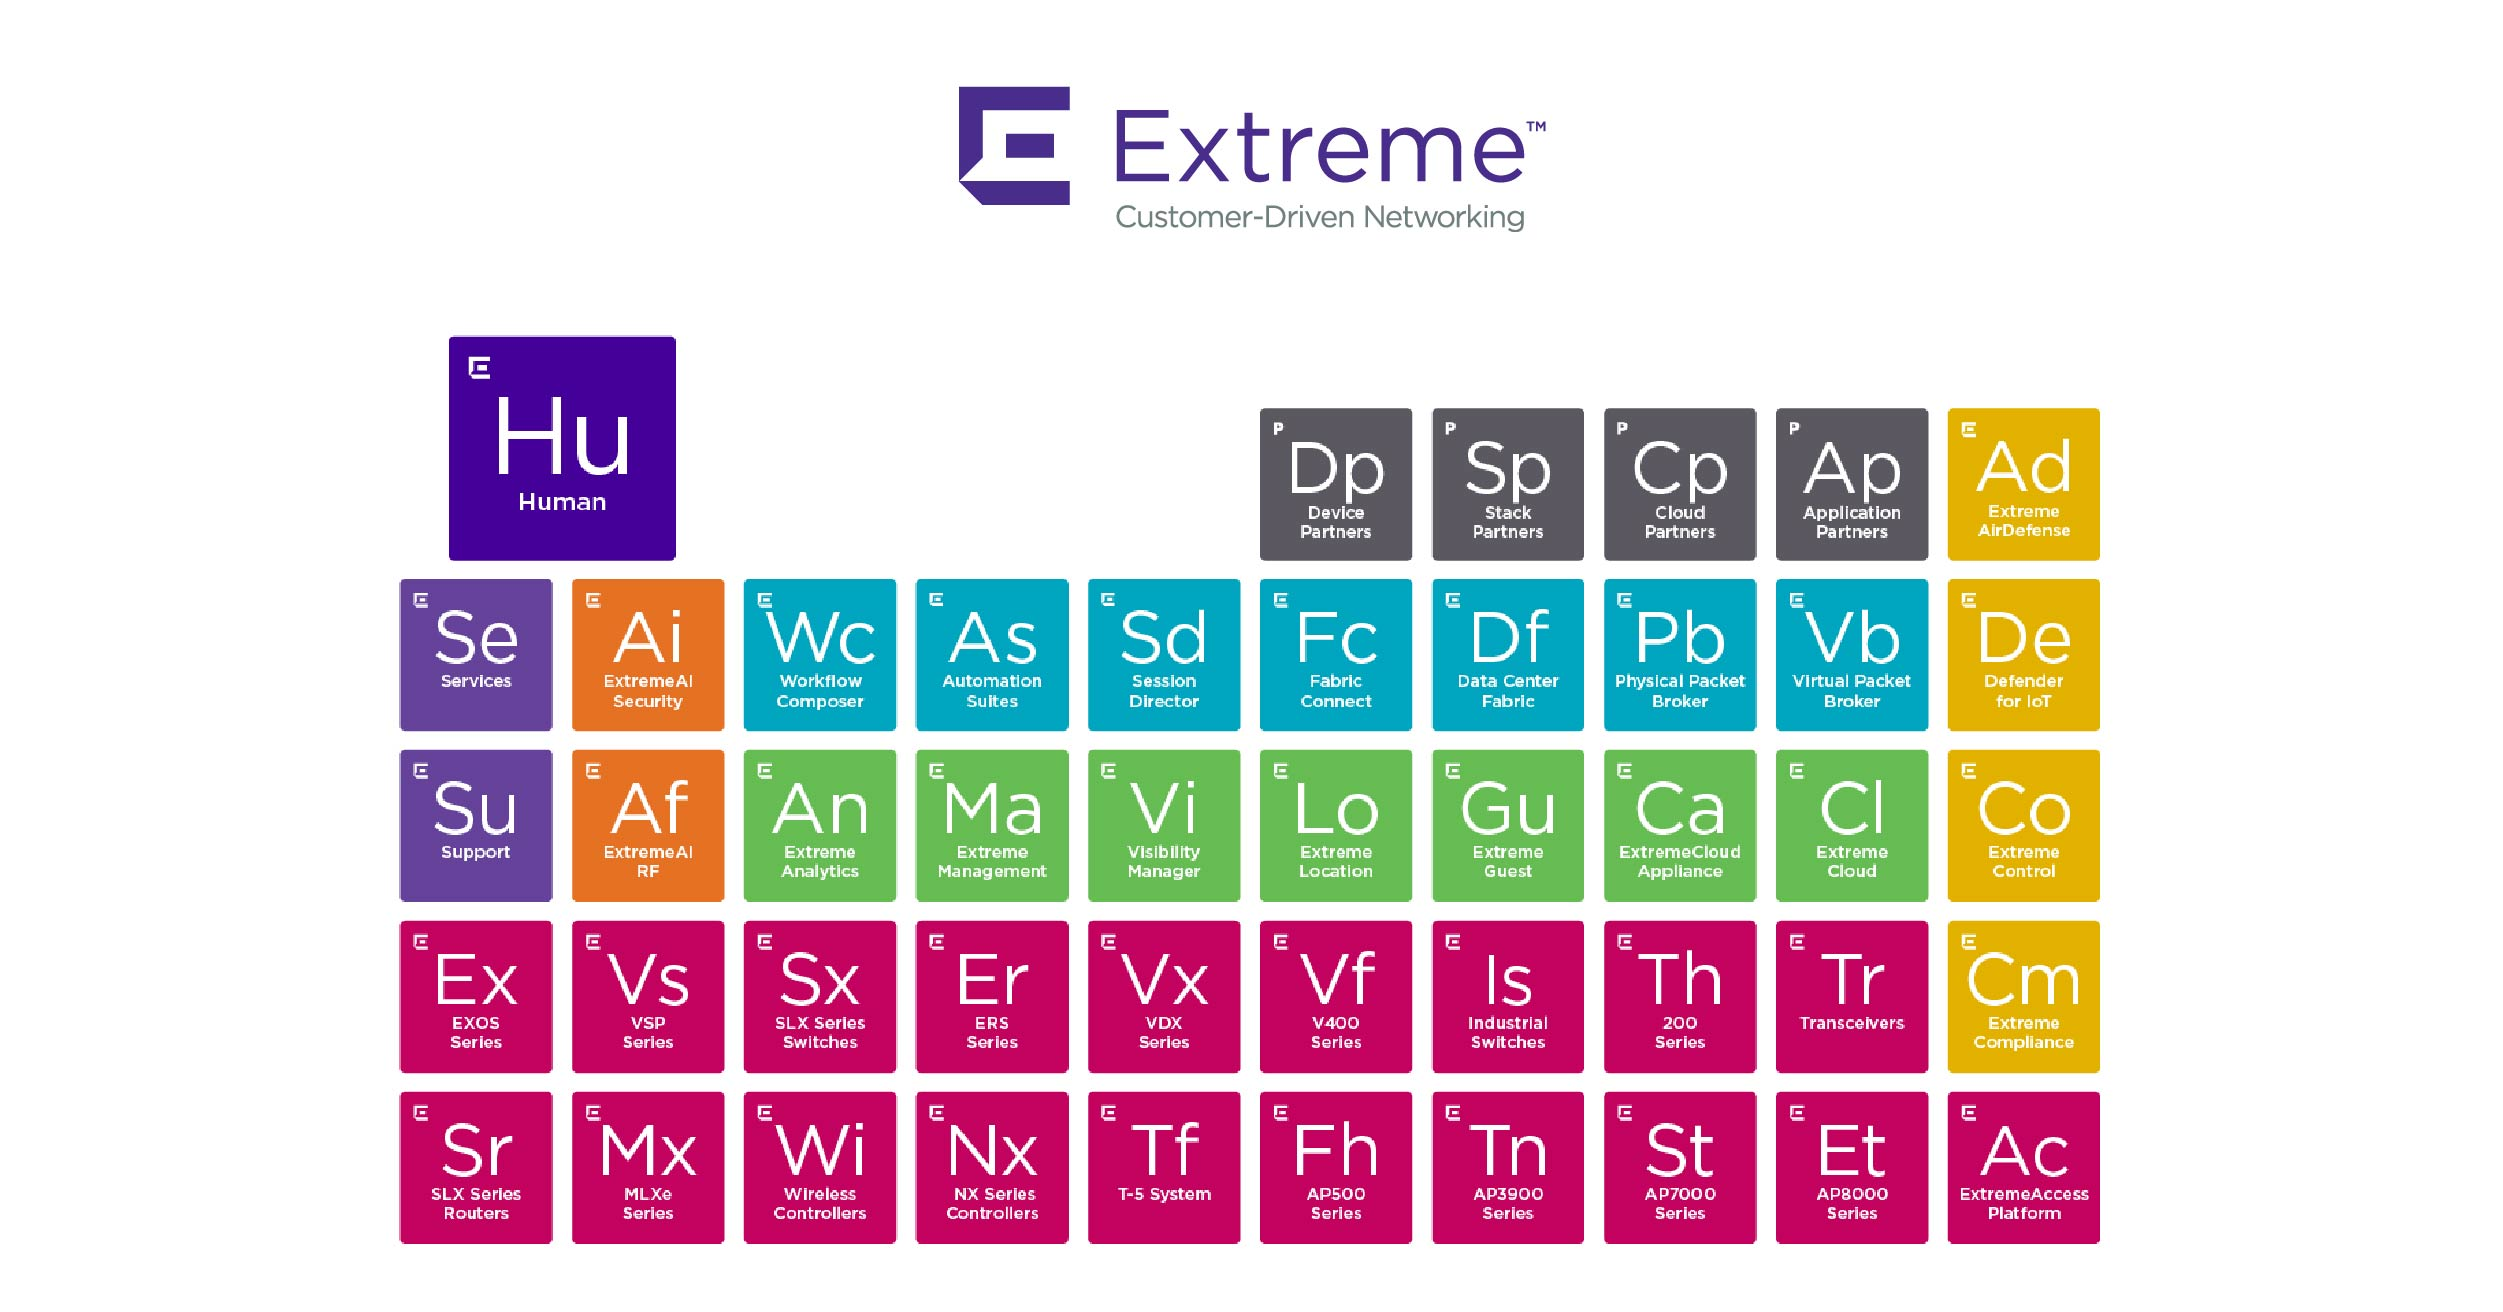 Extreme Networks annuncia Extreme Elements